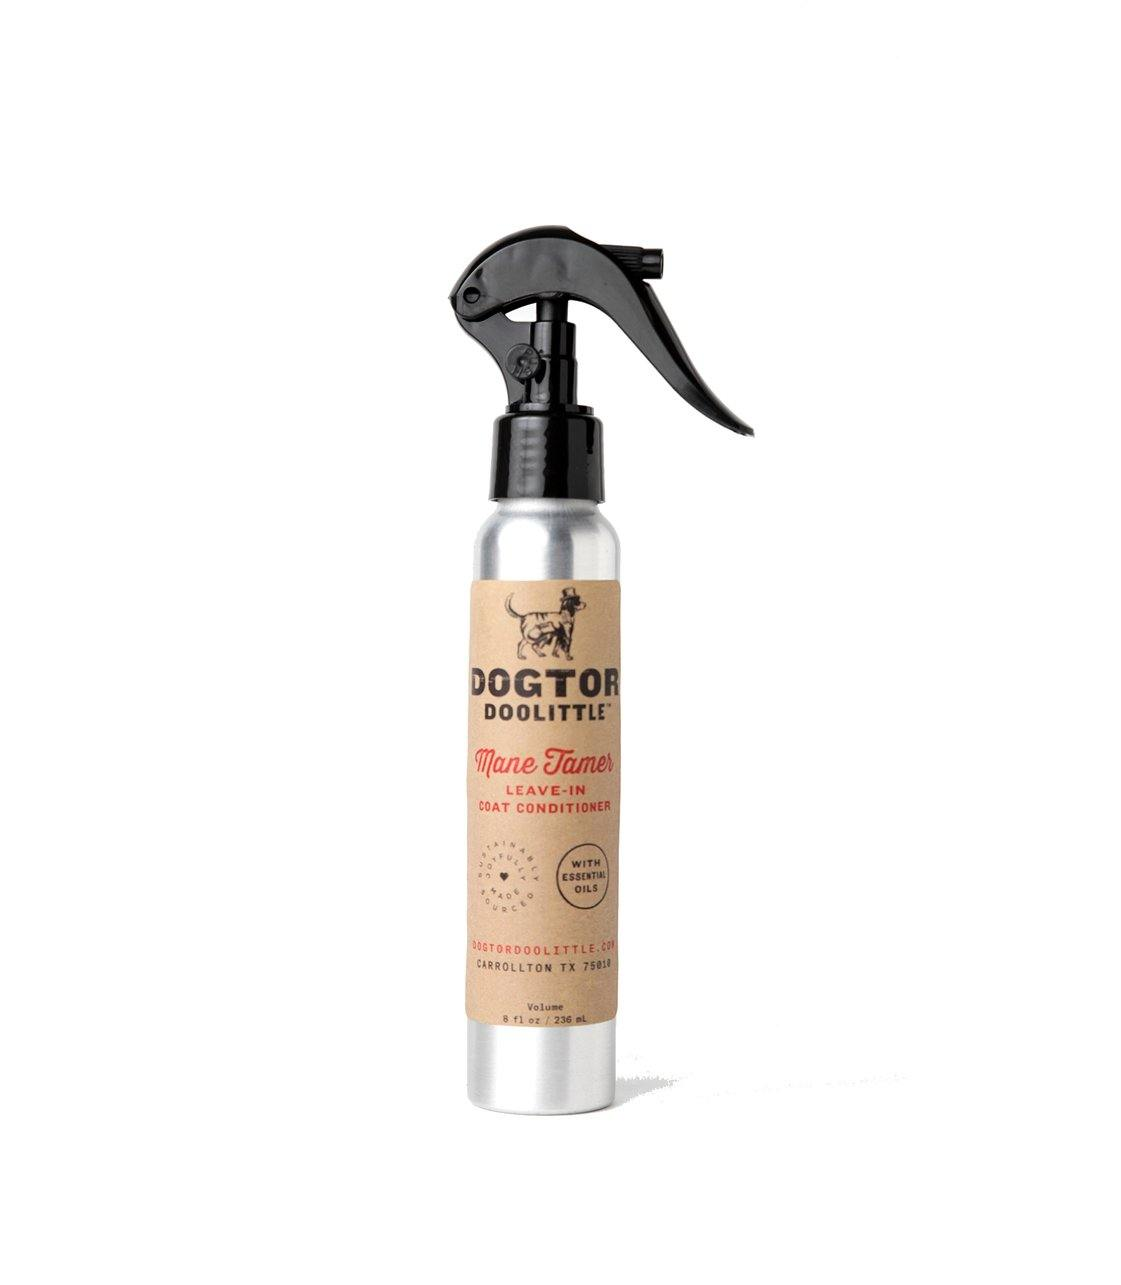 Dogtor Doolittle™ Mane Tamer Leave-In Conditioner for Dogs